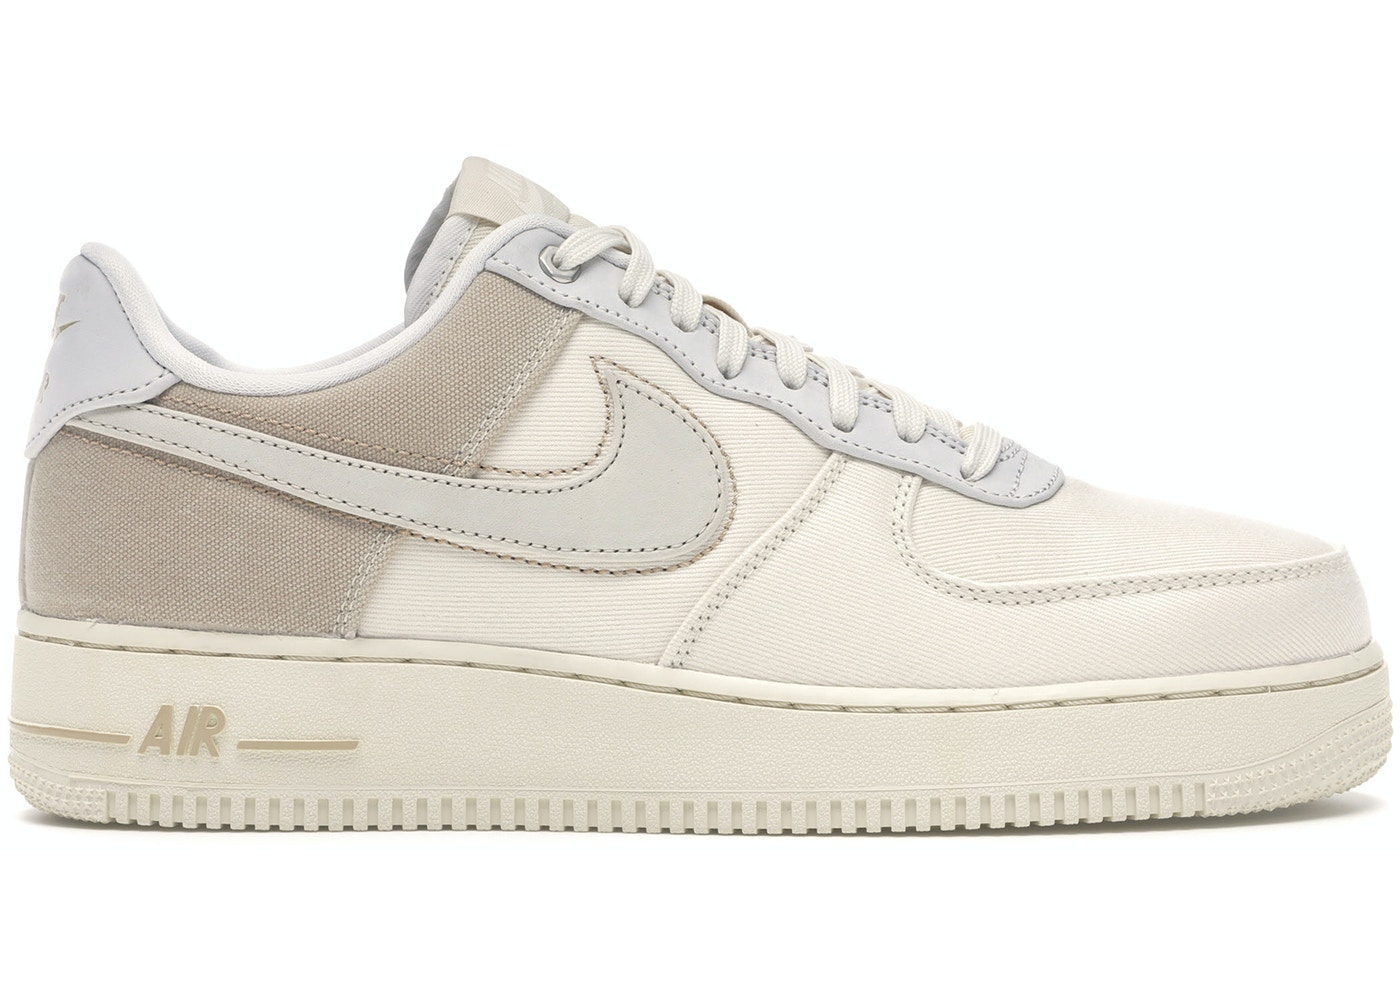 Nike Air Force 1 Low '07 Premium Pale Ivory